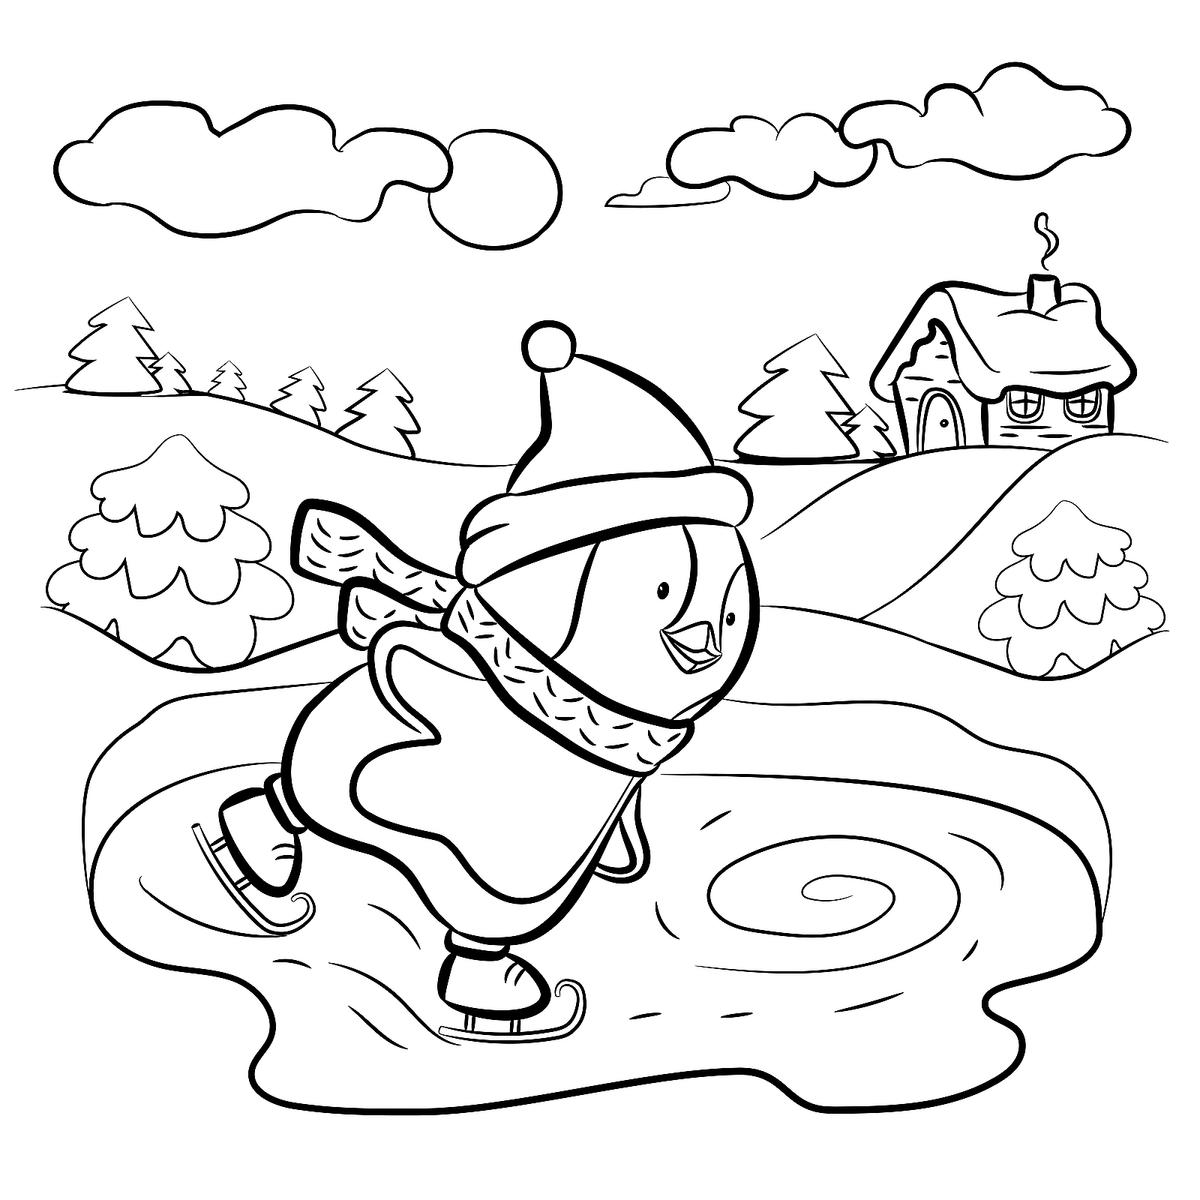 Winter Puzzle & Coloring Pages: Printable Winter-Themed ... | coloring sheets winter animals